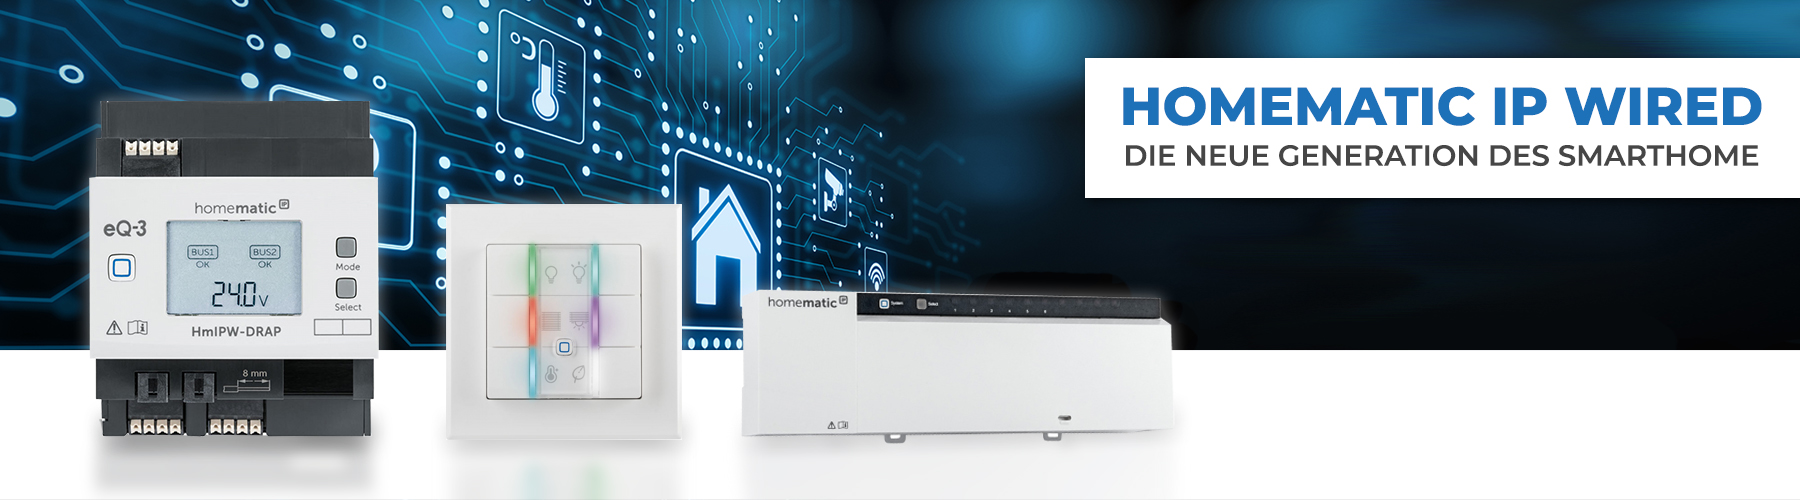 HomeMatic IP Wired